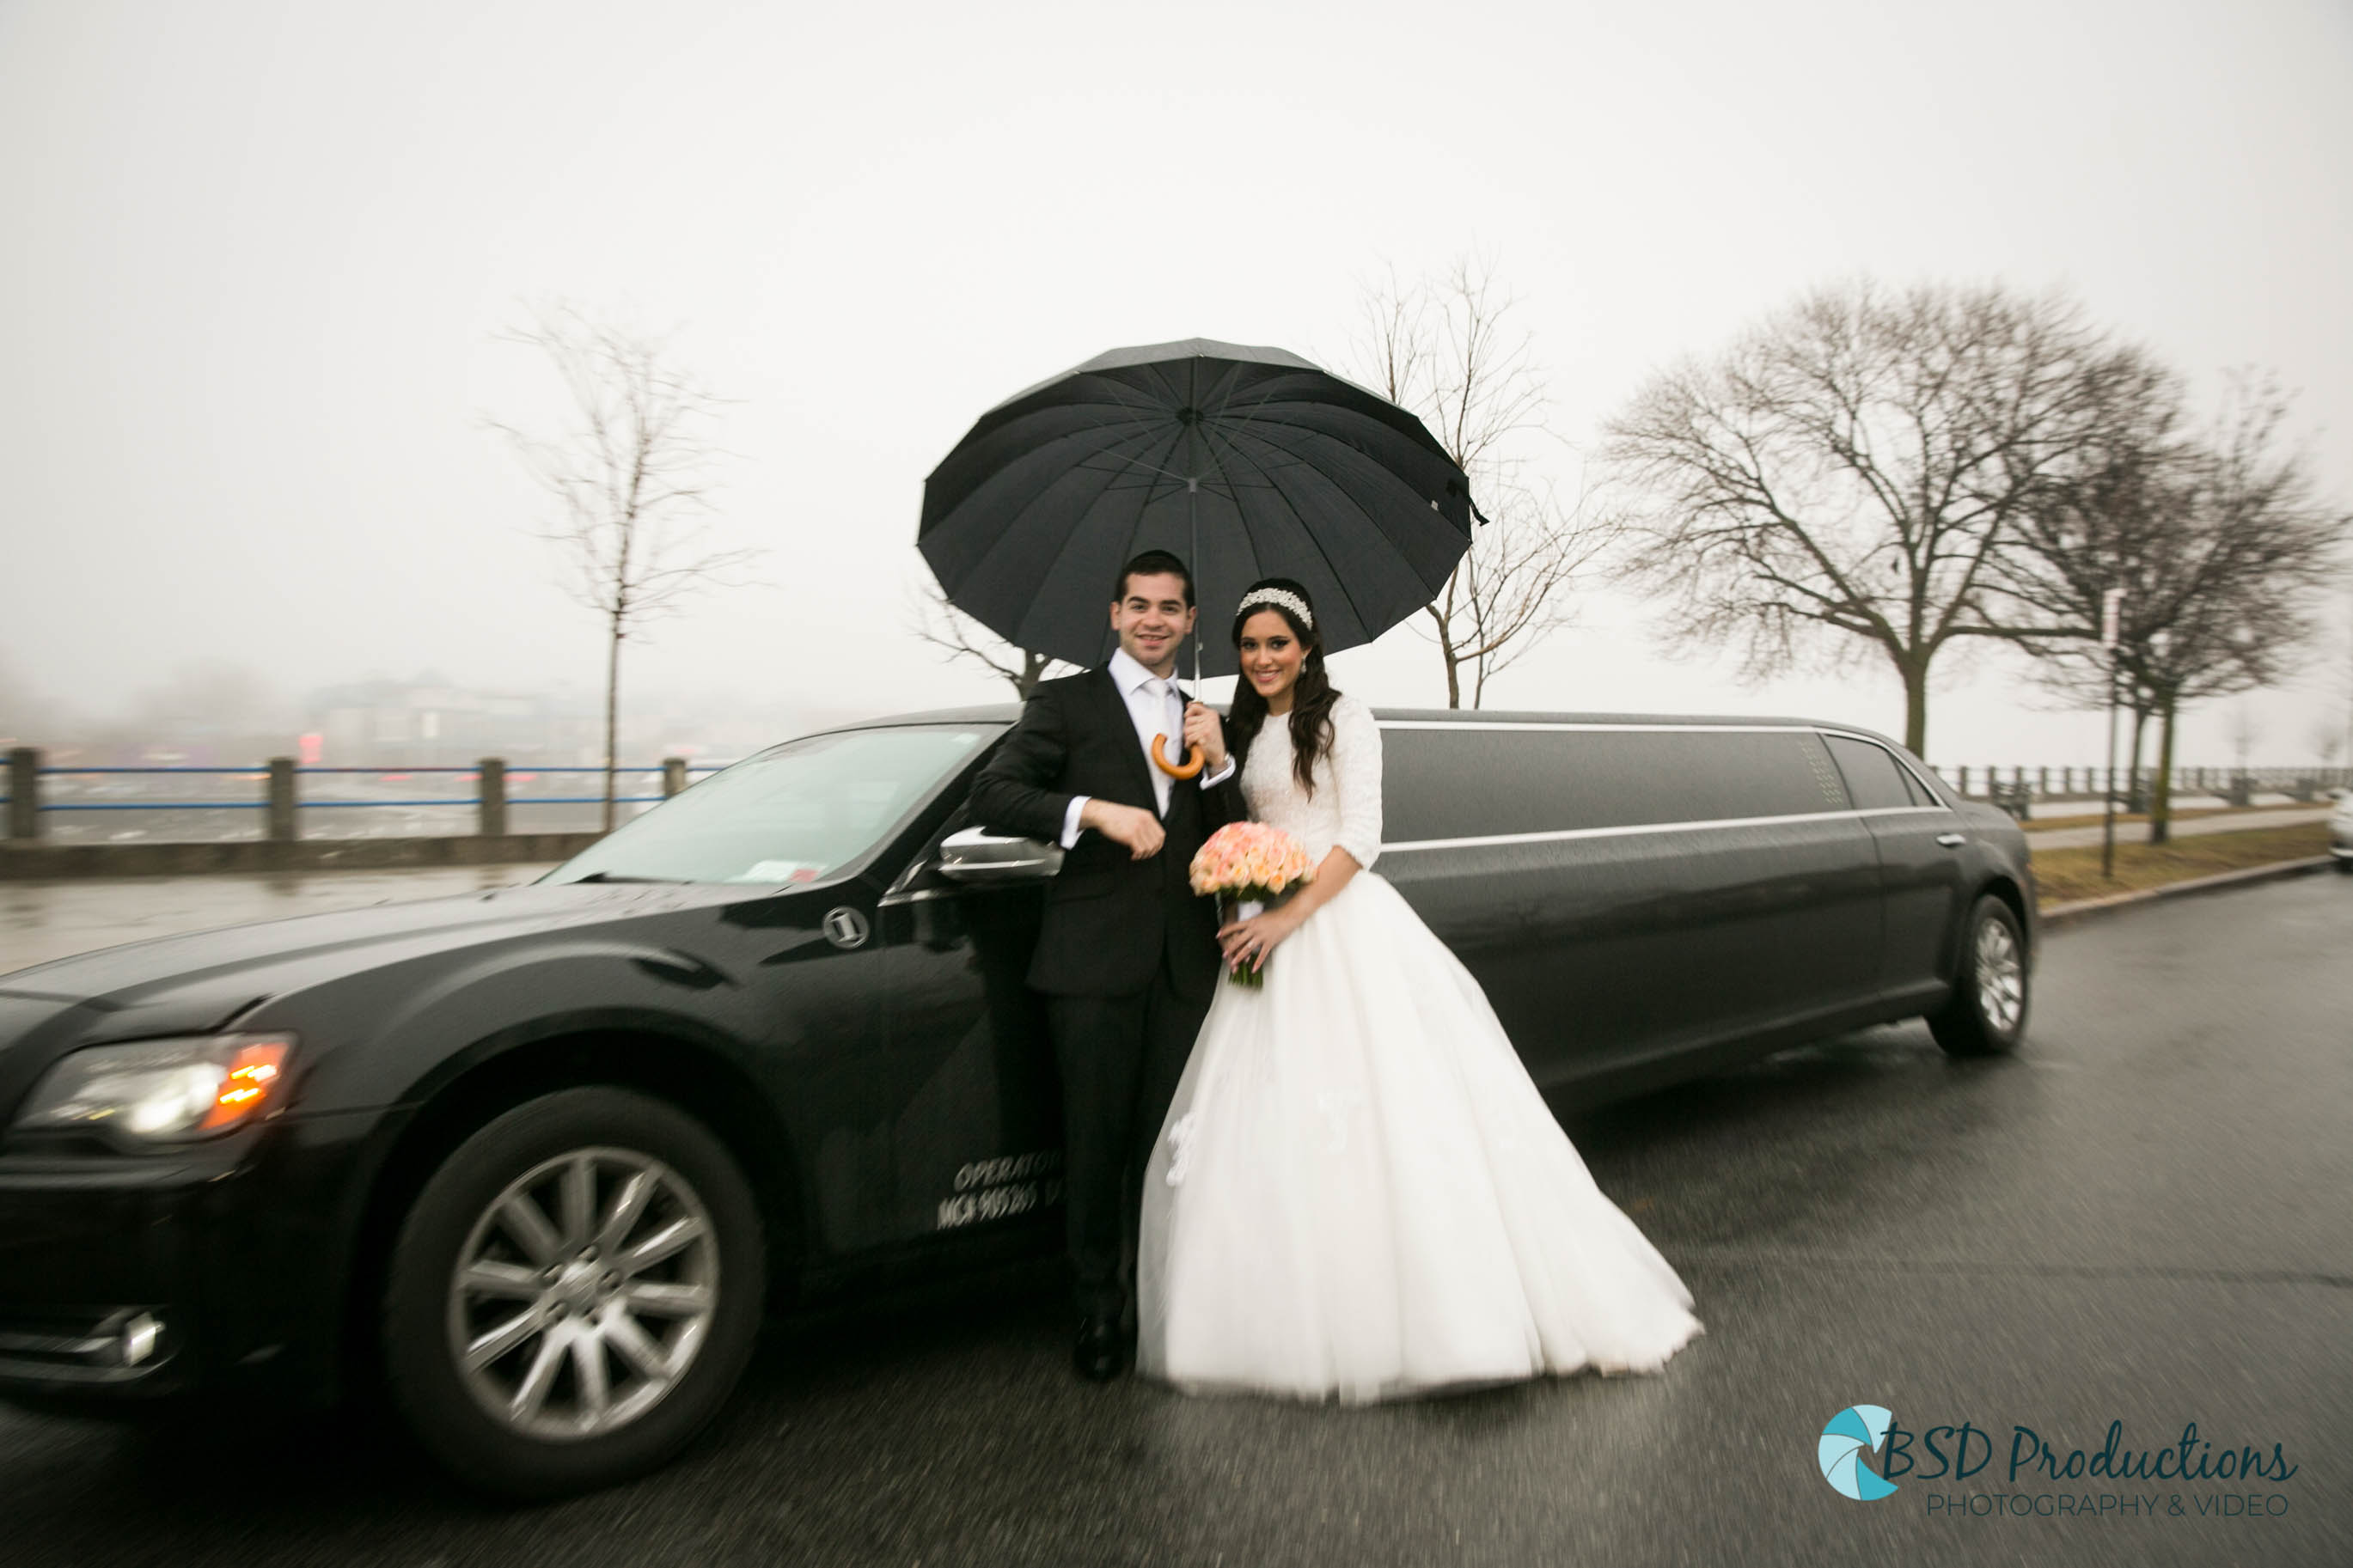 UH5A0587 Wedding – BSD Productions Photography